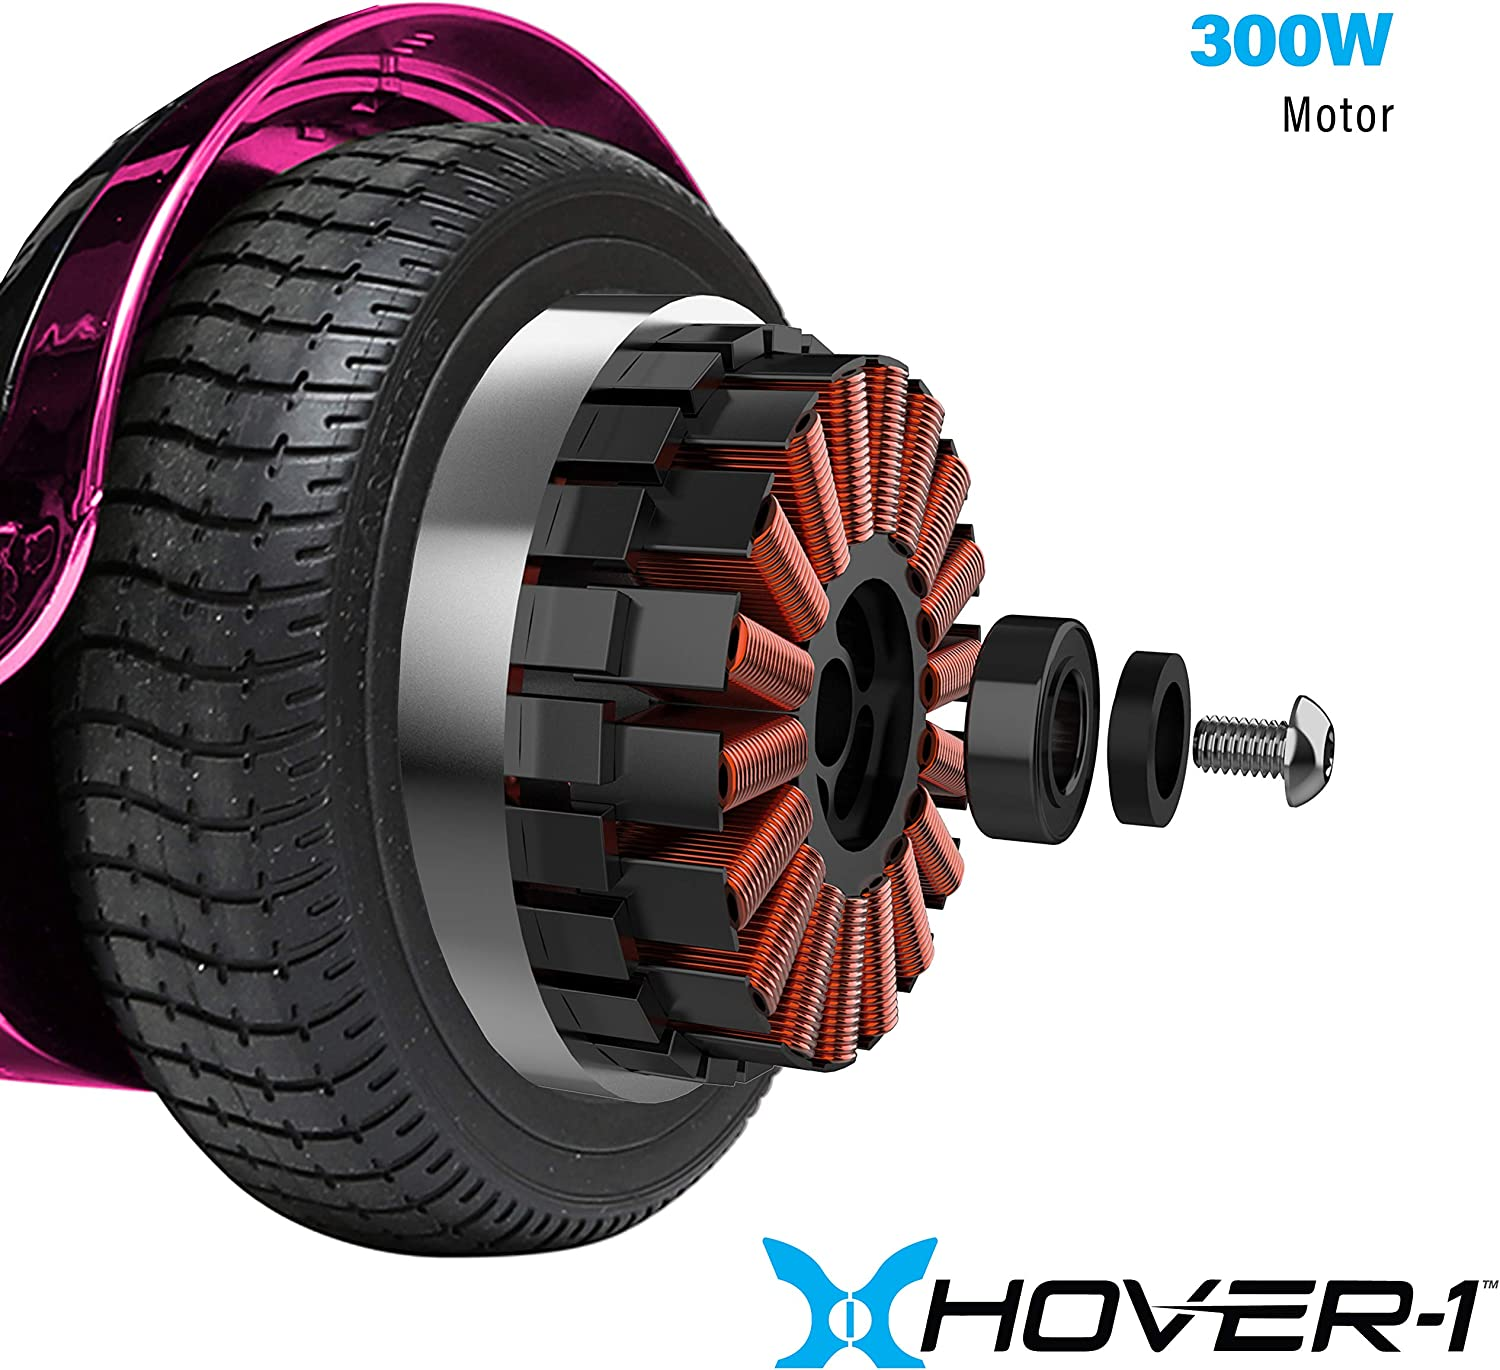 Hover-1 Chrome Electric Hoverboard Scooter Pink - 2